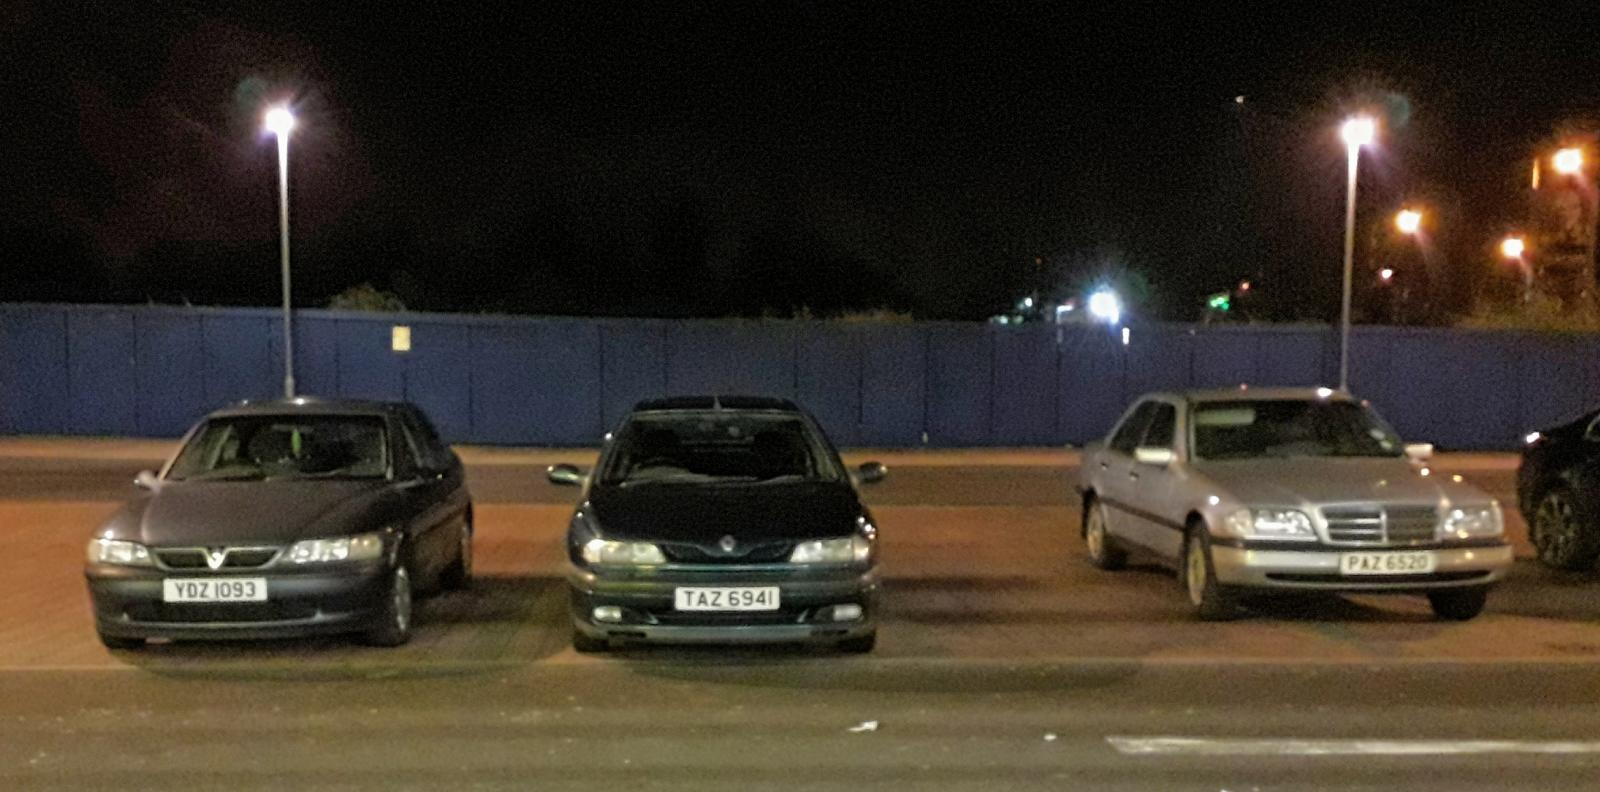 Lidl Carpark - 9 Feb 2018.jpg